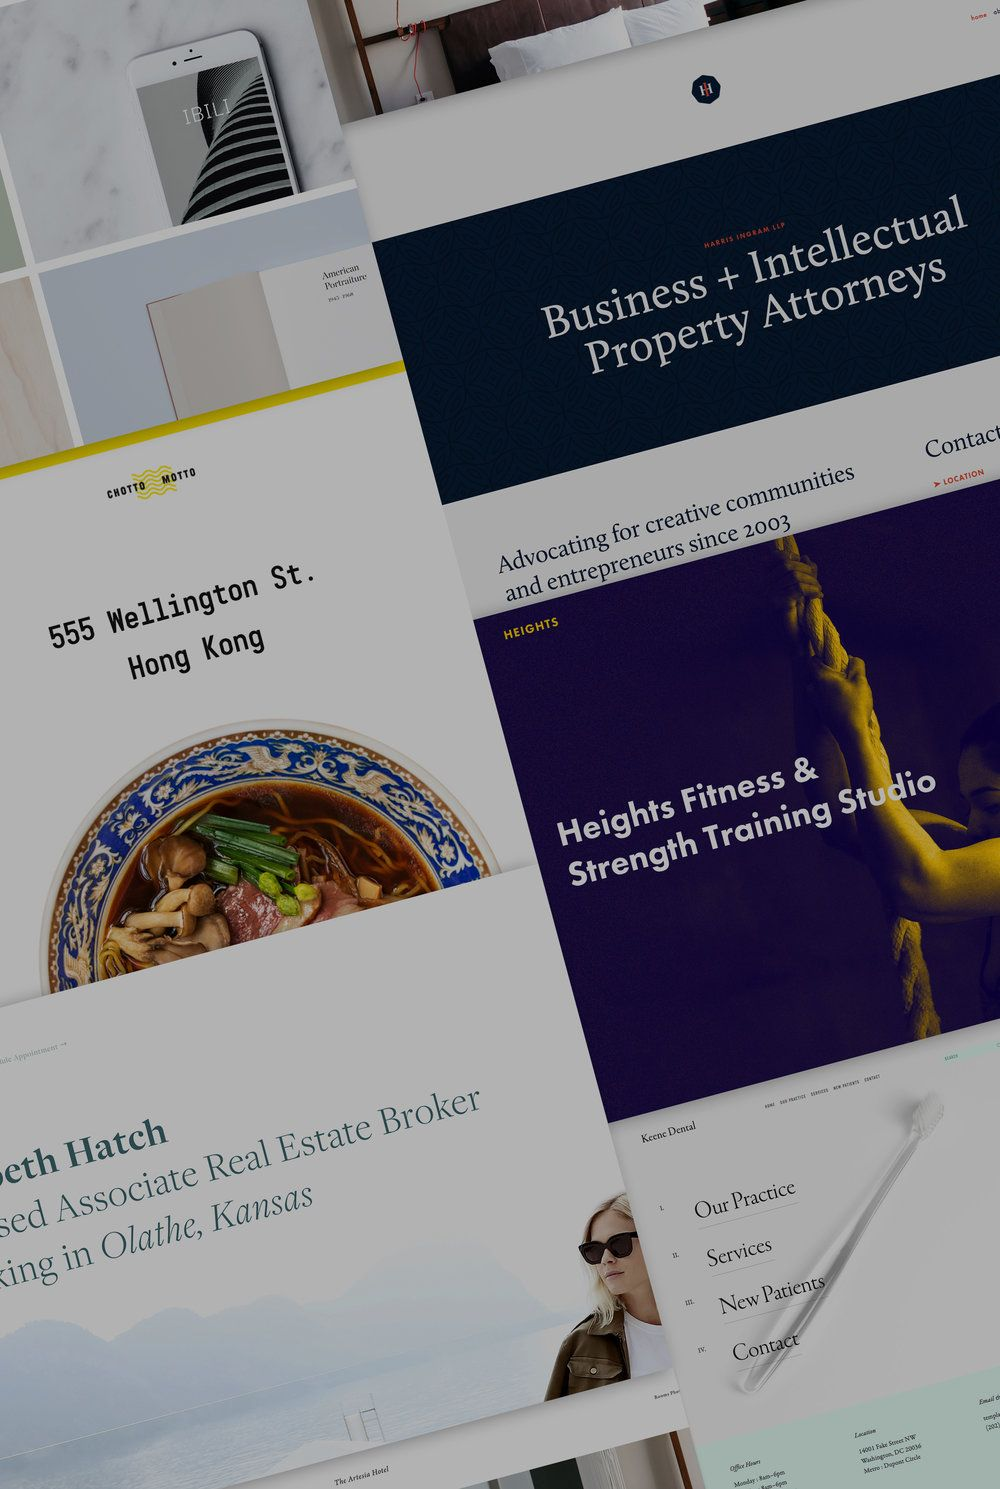 7 new templates for businesses and professional services